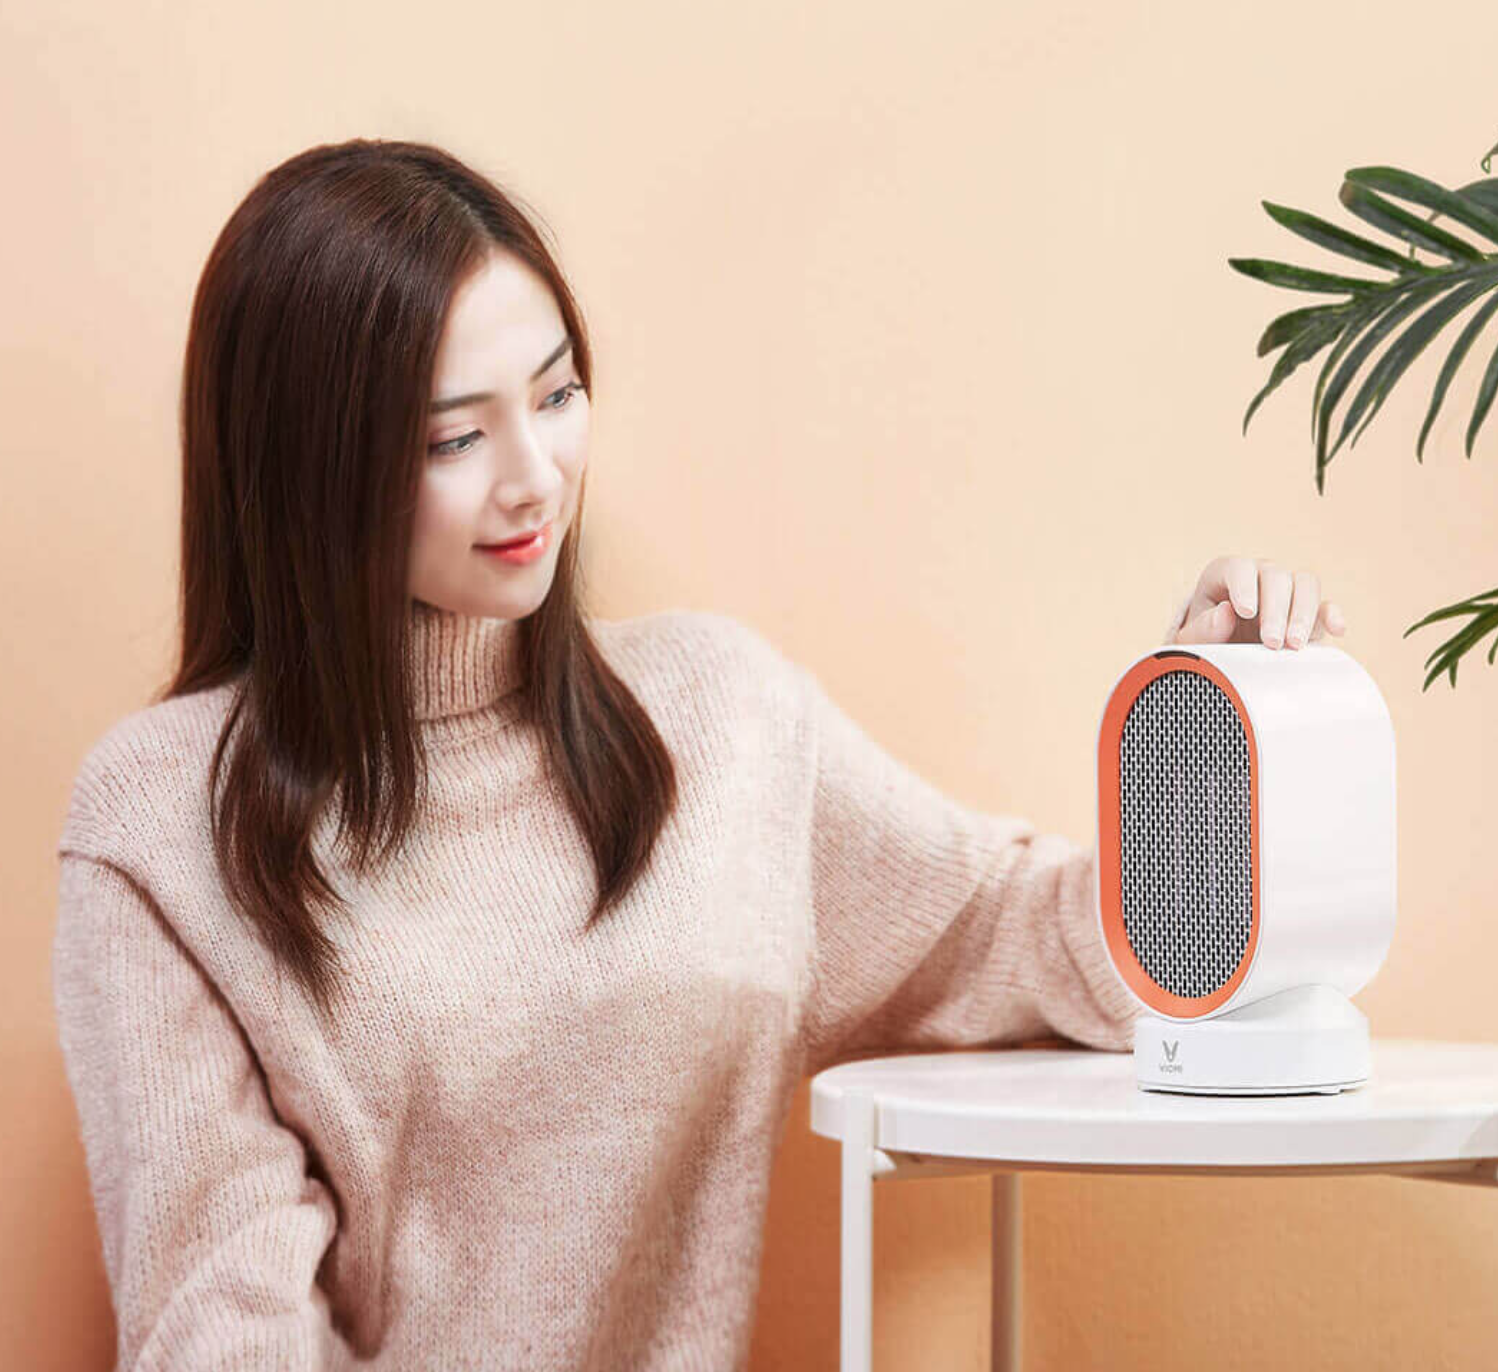 Viomi presents a rotating heater on the Youpin platform